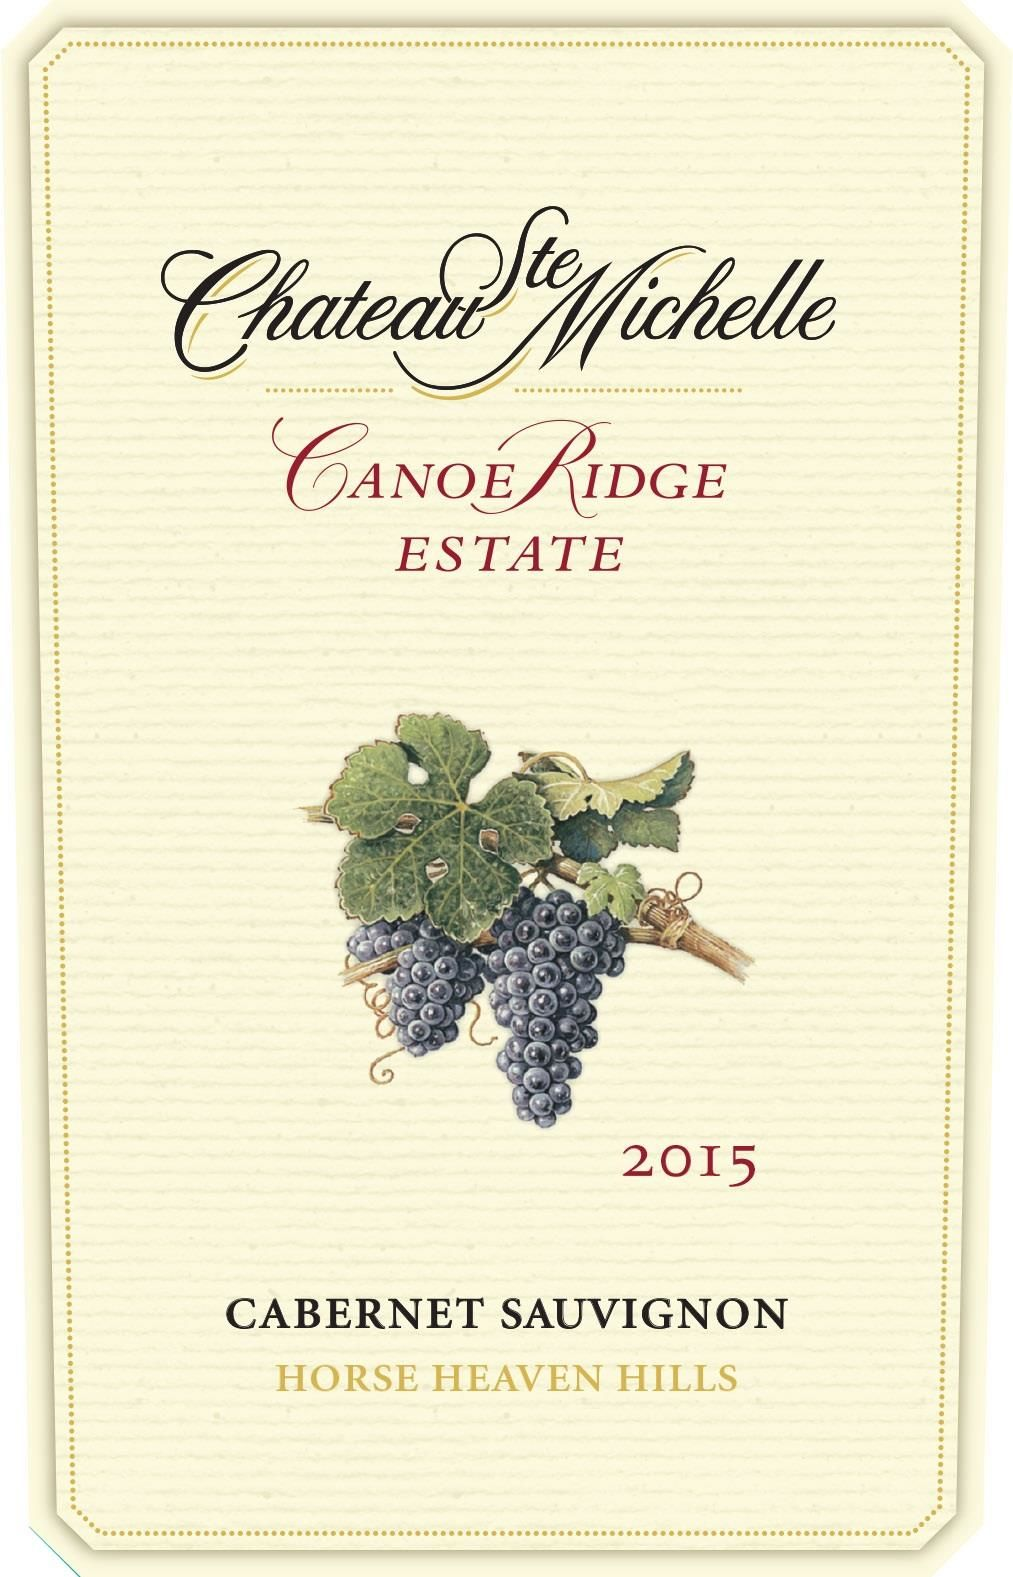 Chateau Ste. Michelle Canoe Ridge Estate Cabernet Sauvignon 2015 Front Label